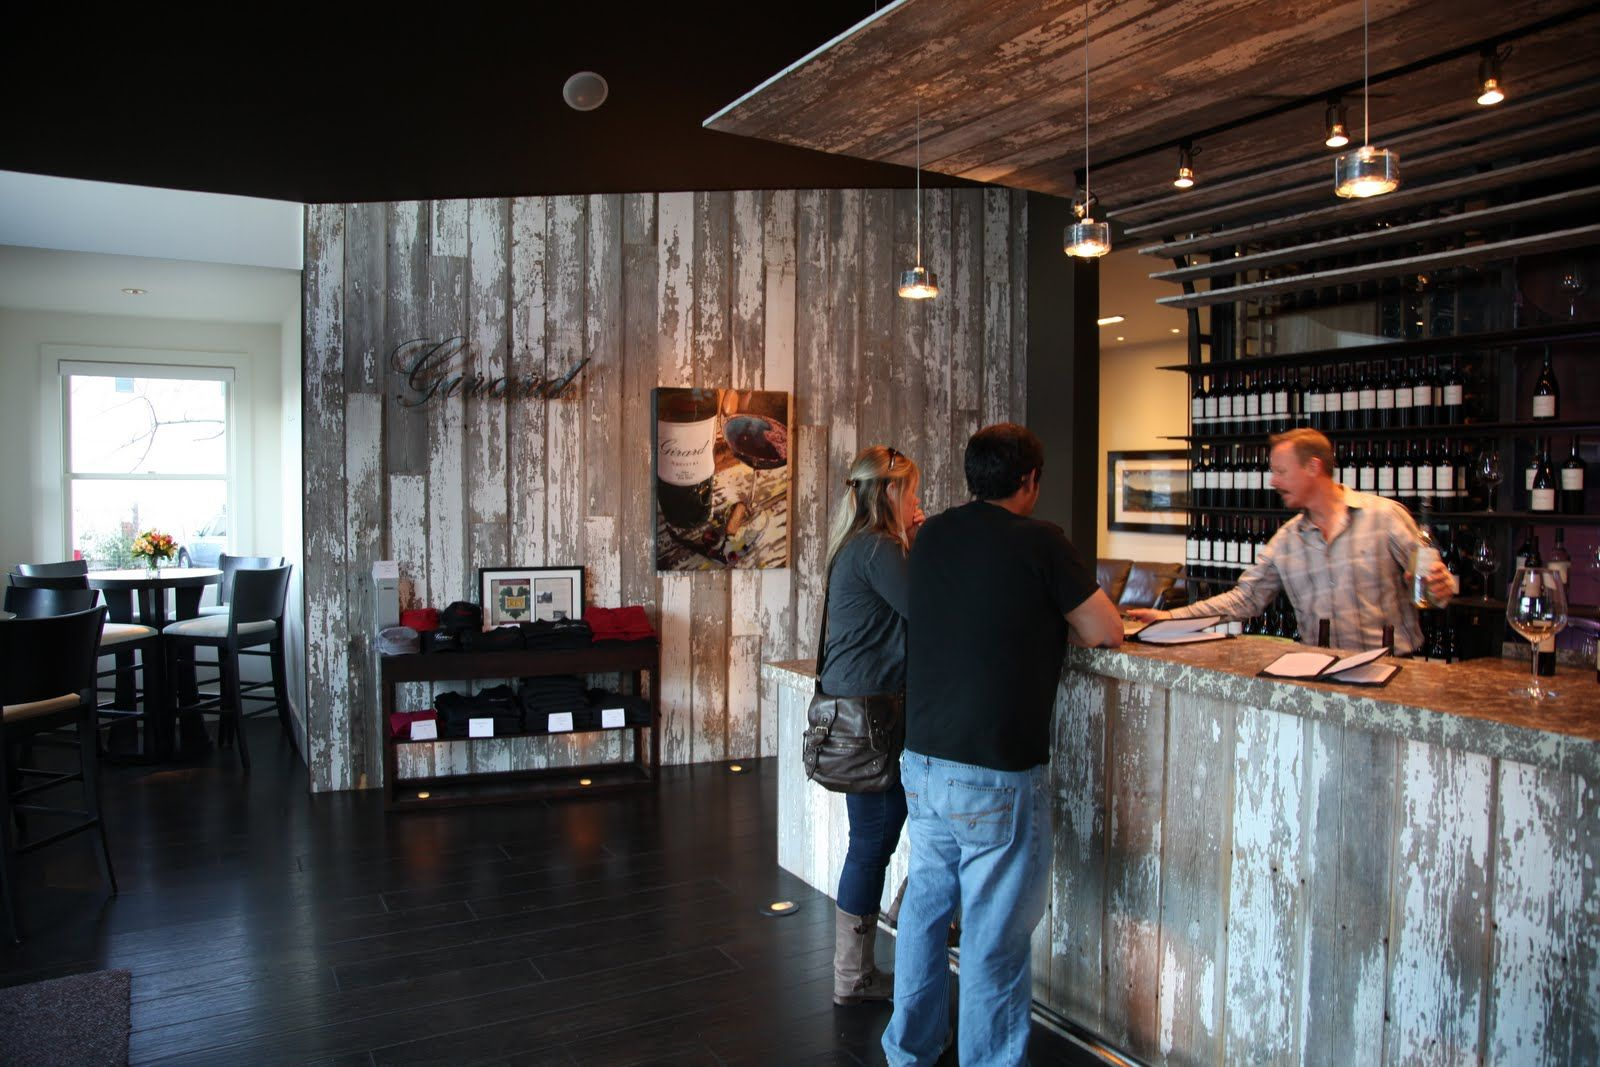 tasting room refined floor, vintage bar and soffit | Wine tasting ...